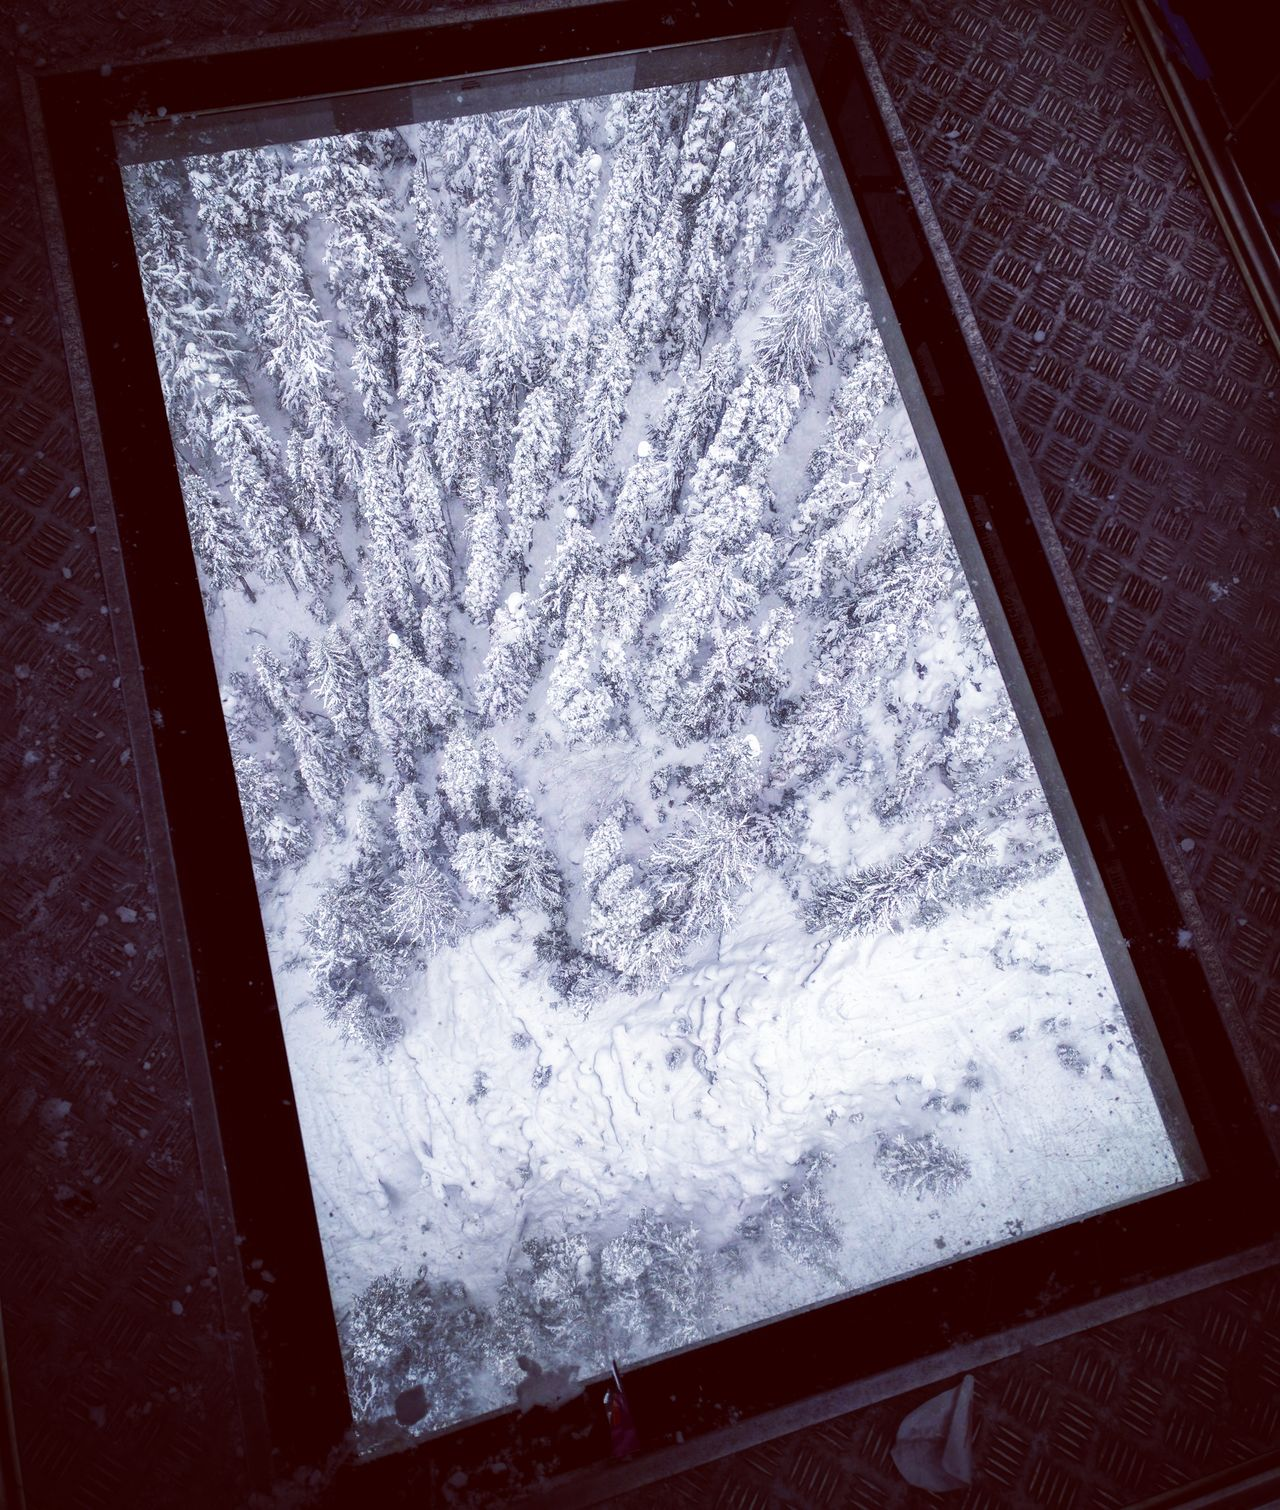 CLOSE-UP OF SNOW IN WINDOW